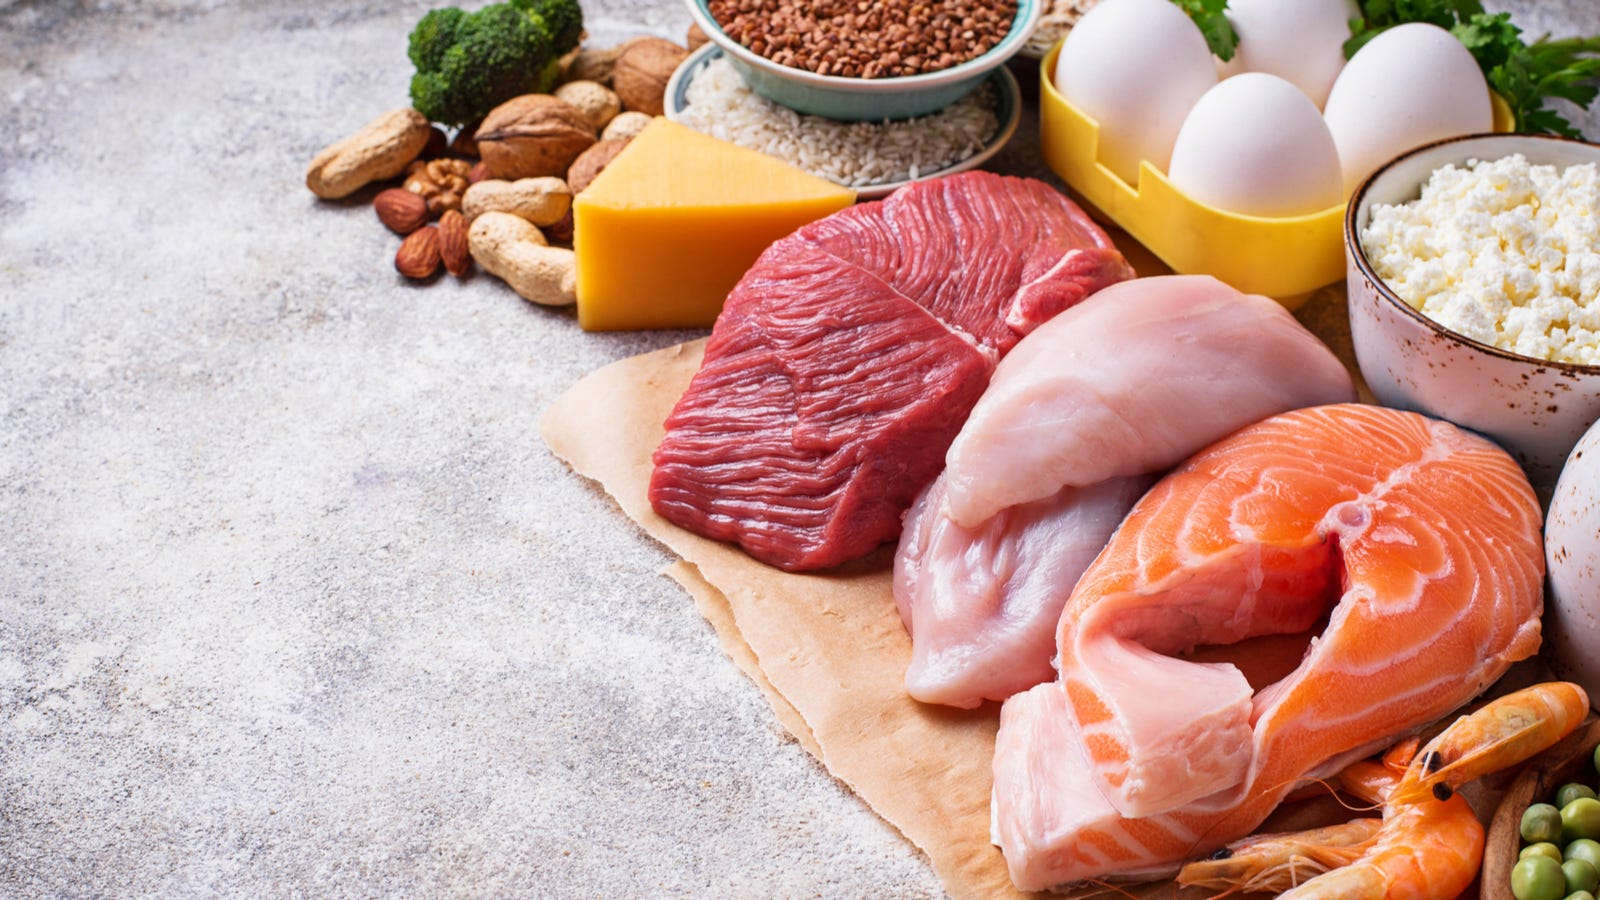 Perishable foods including raw meat, fish, eggs and various dairy.